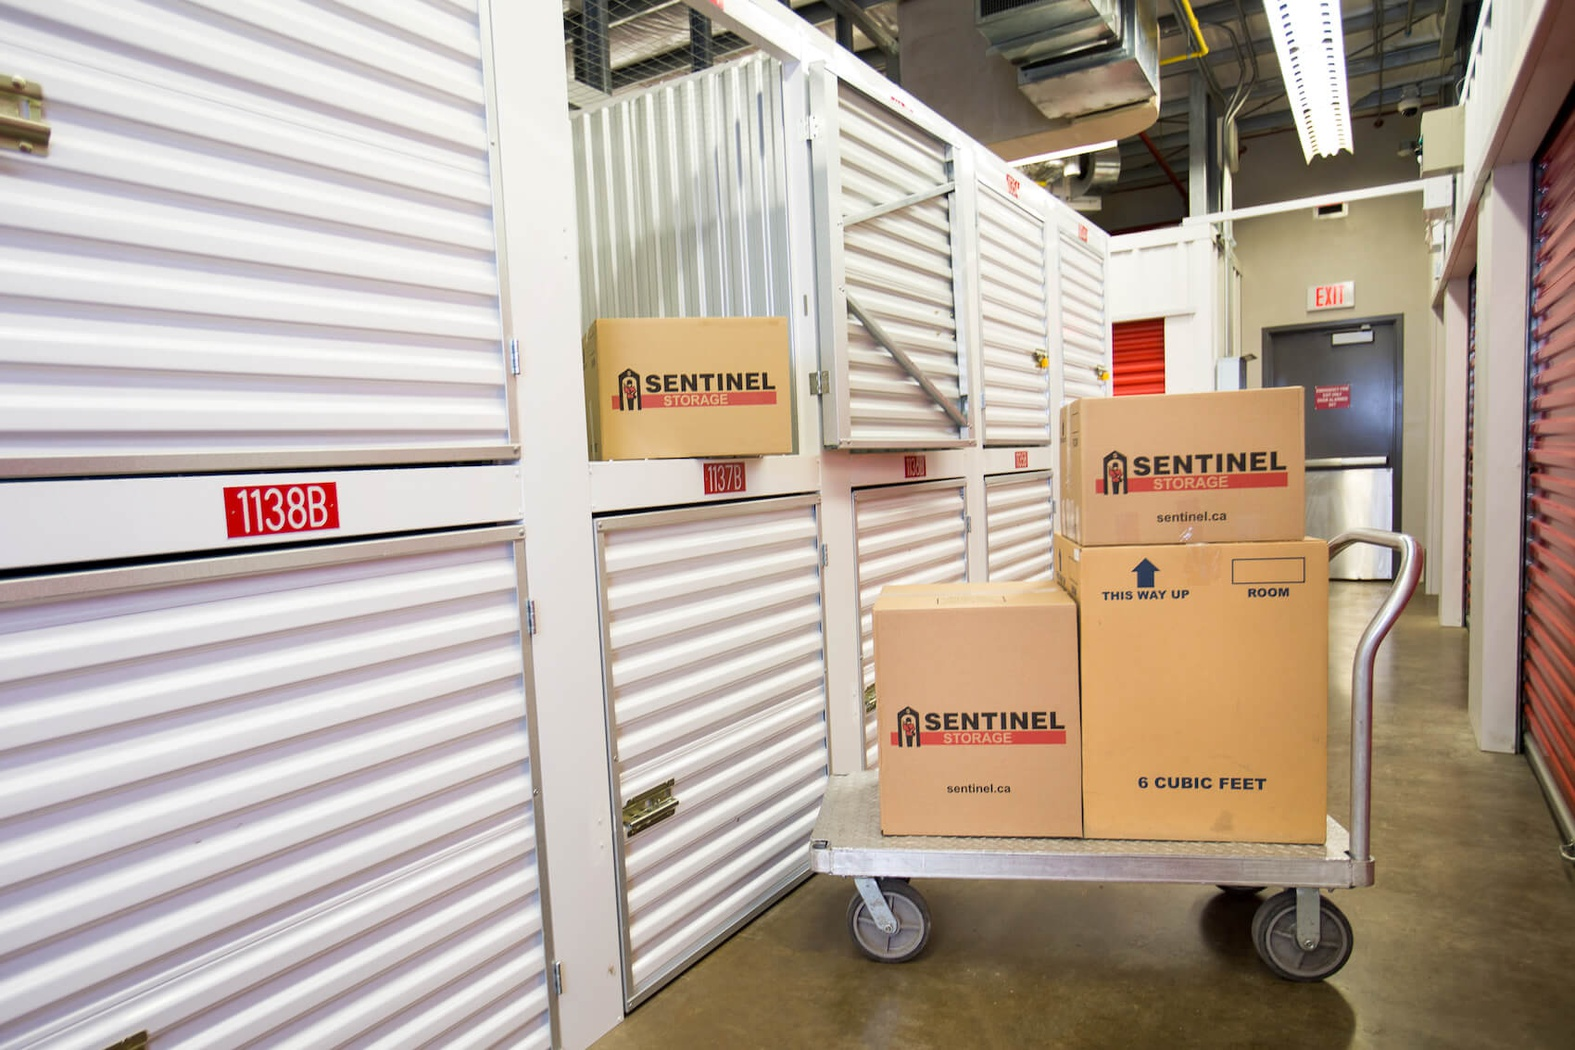 Rent Edmonton storage units at 9920 63 Ave NW. We offer a wide-range of affordable self storage units and your first 4 weeks are free!